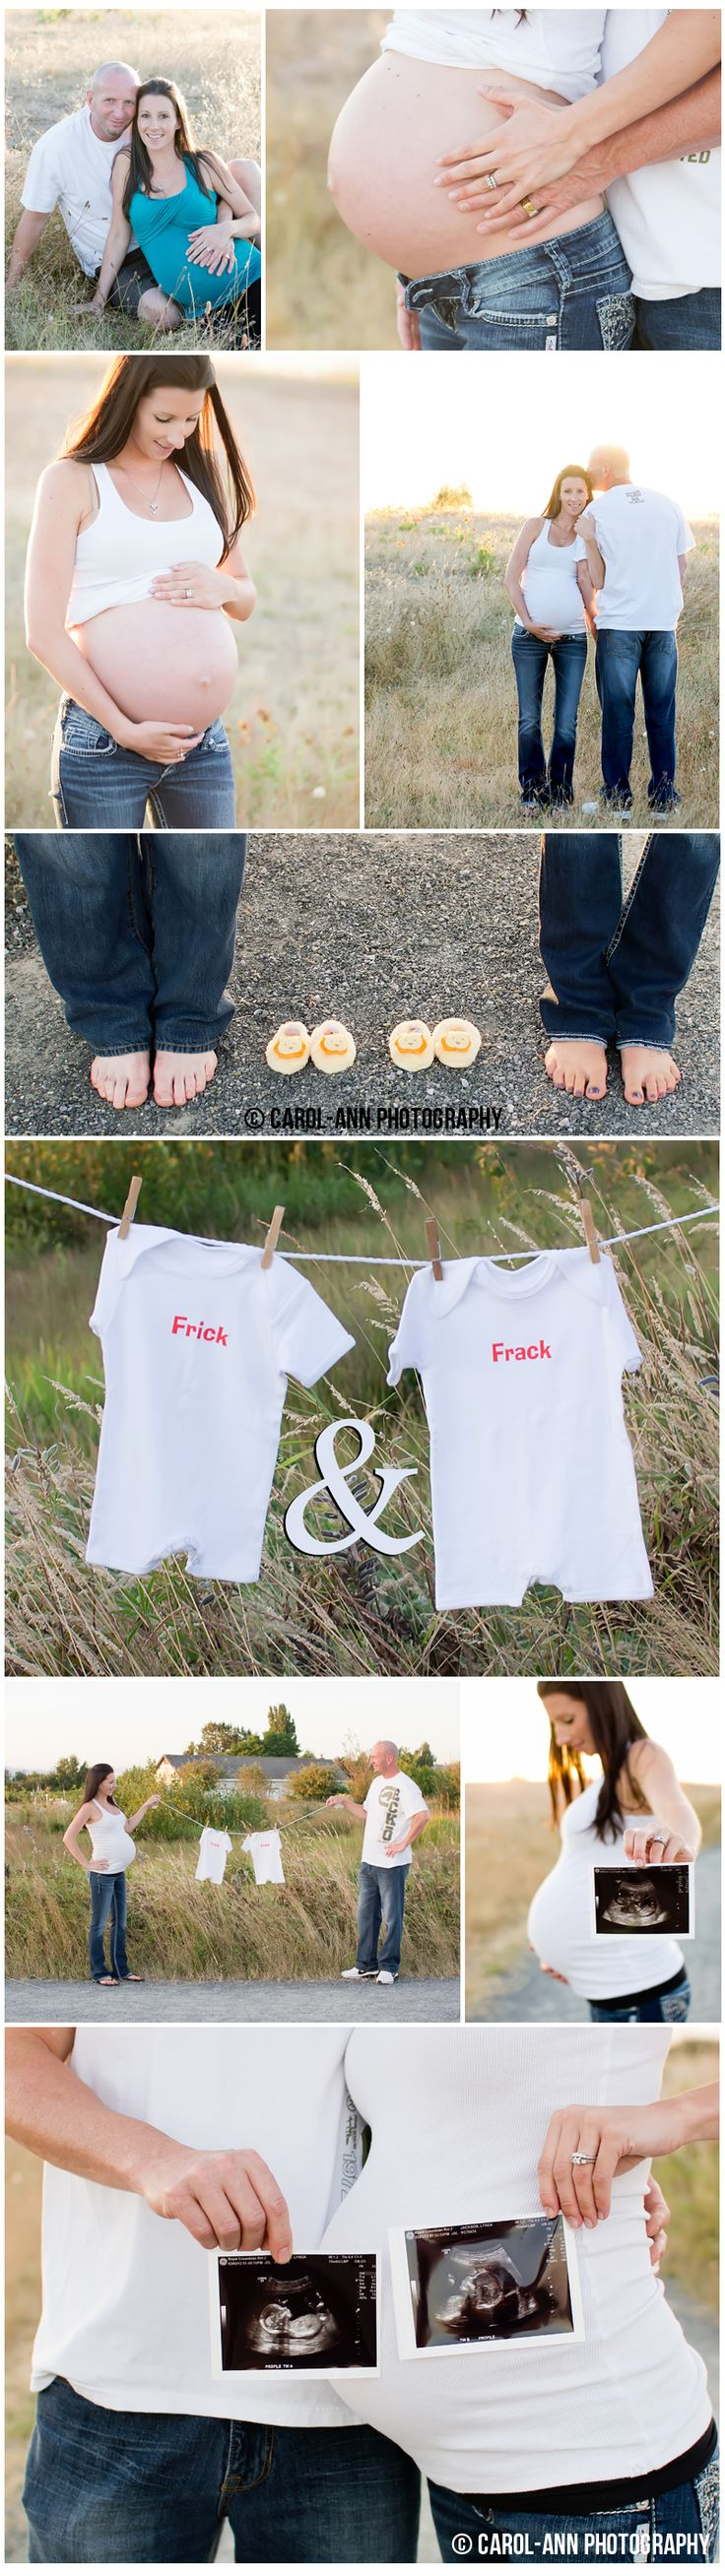 Lynda and Bill's Maternity Session – with TWINS! » Carol-Ann Photography Blog